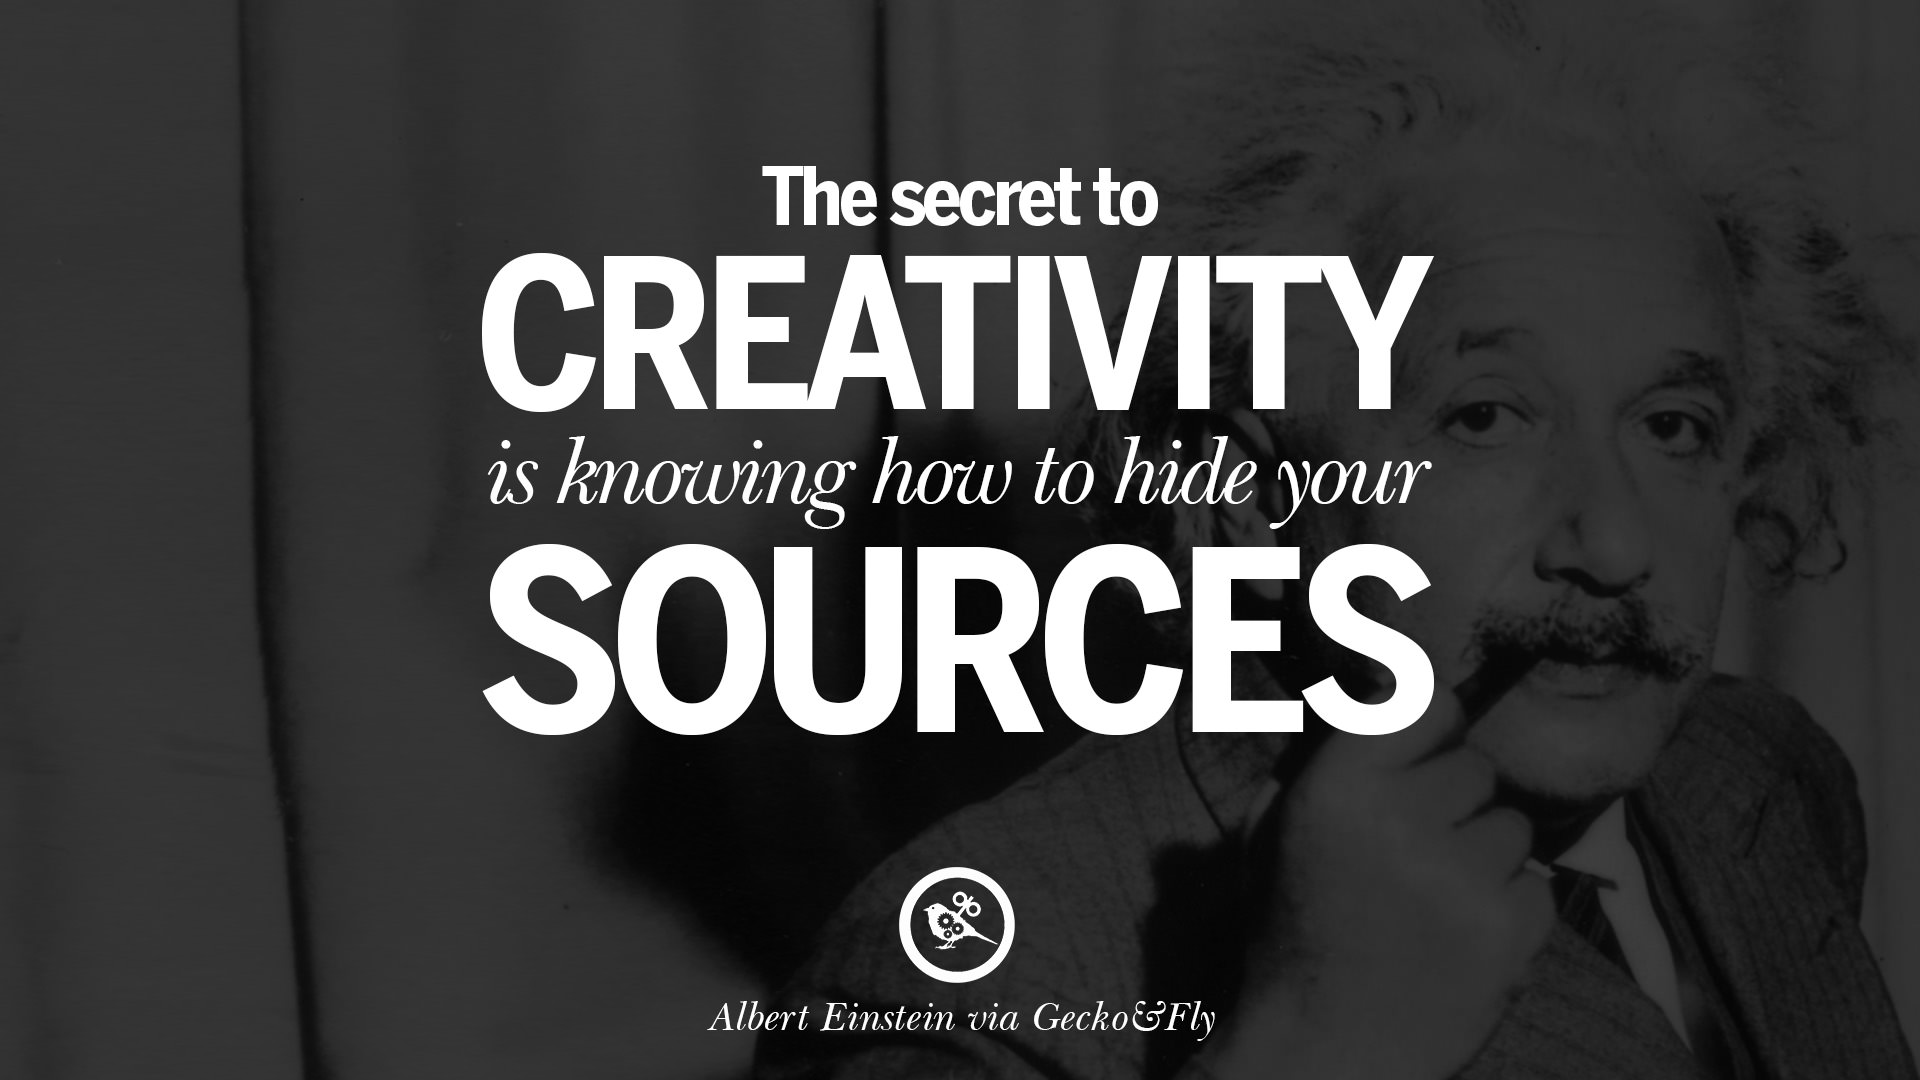 The Secret Quotes 40 Beautiful Albert Einstein Quotes On God Life Knowledge And